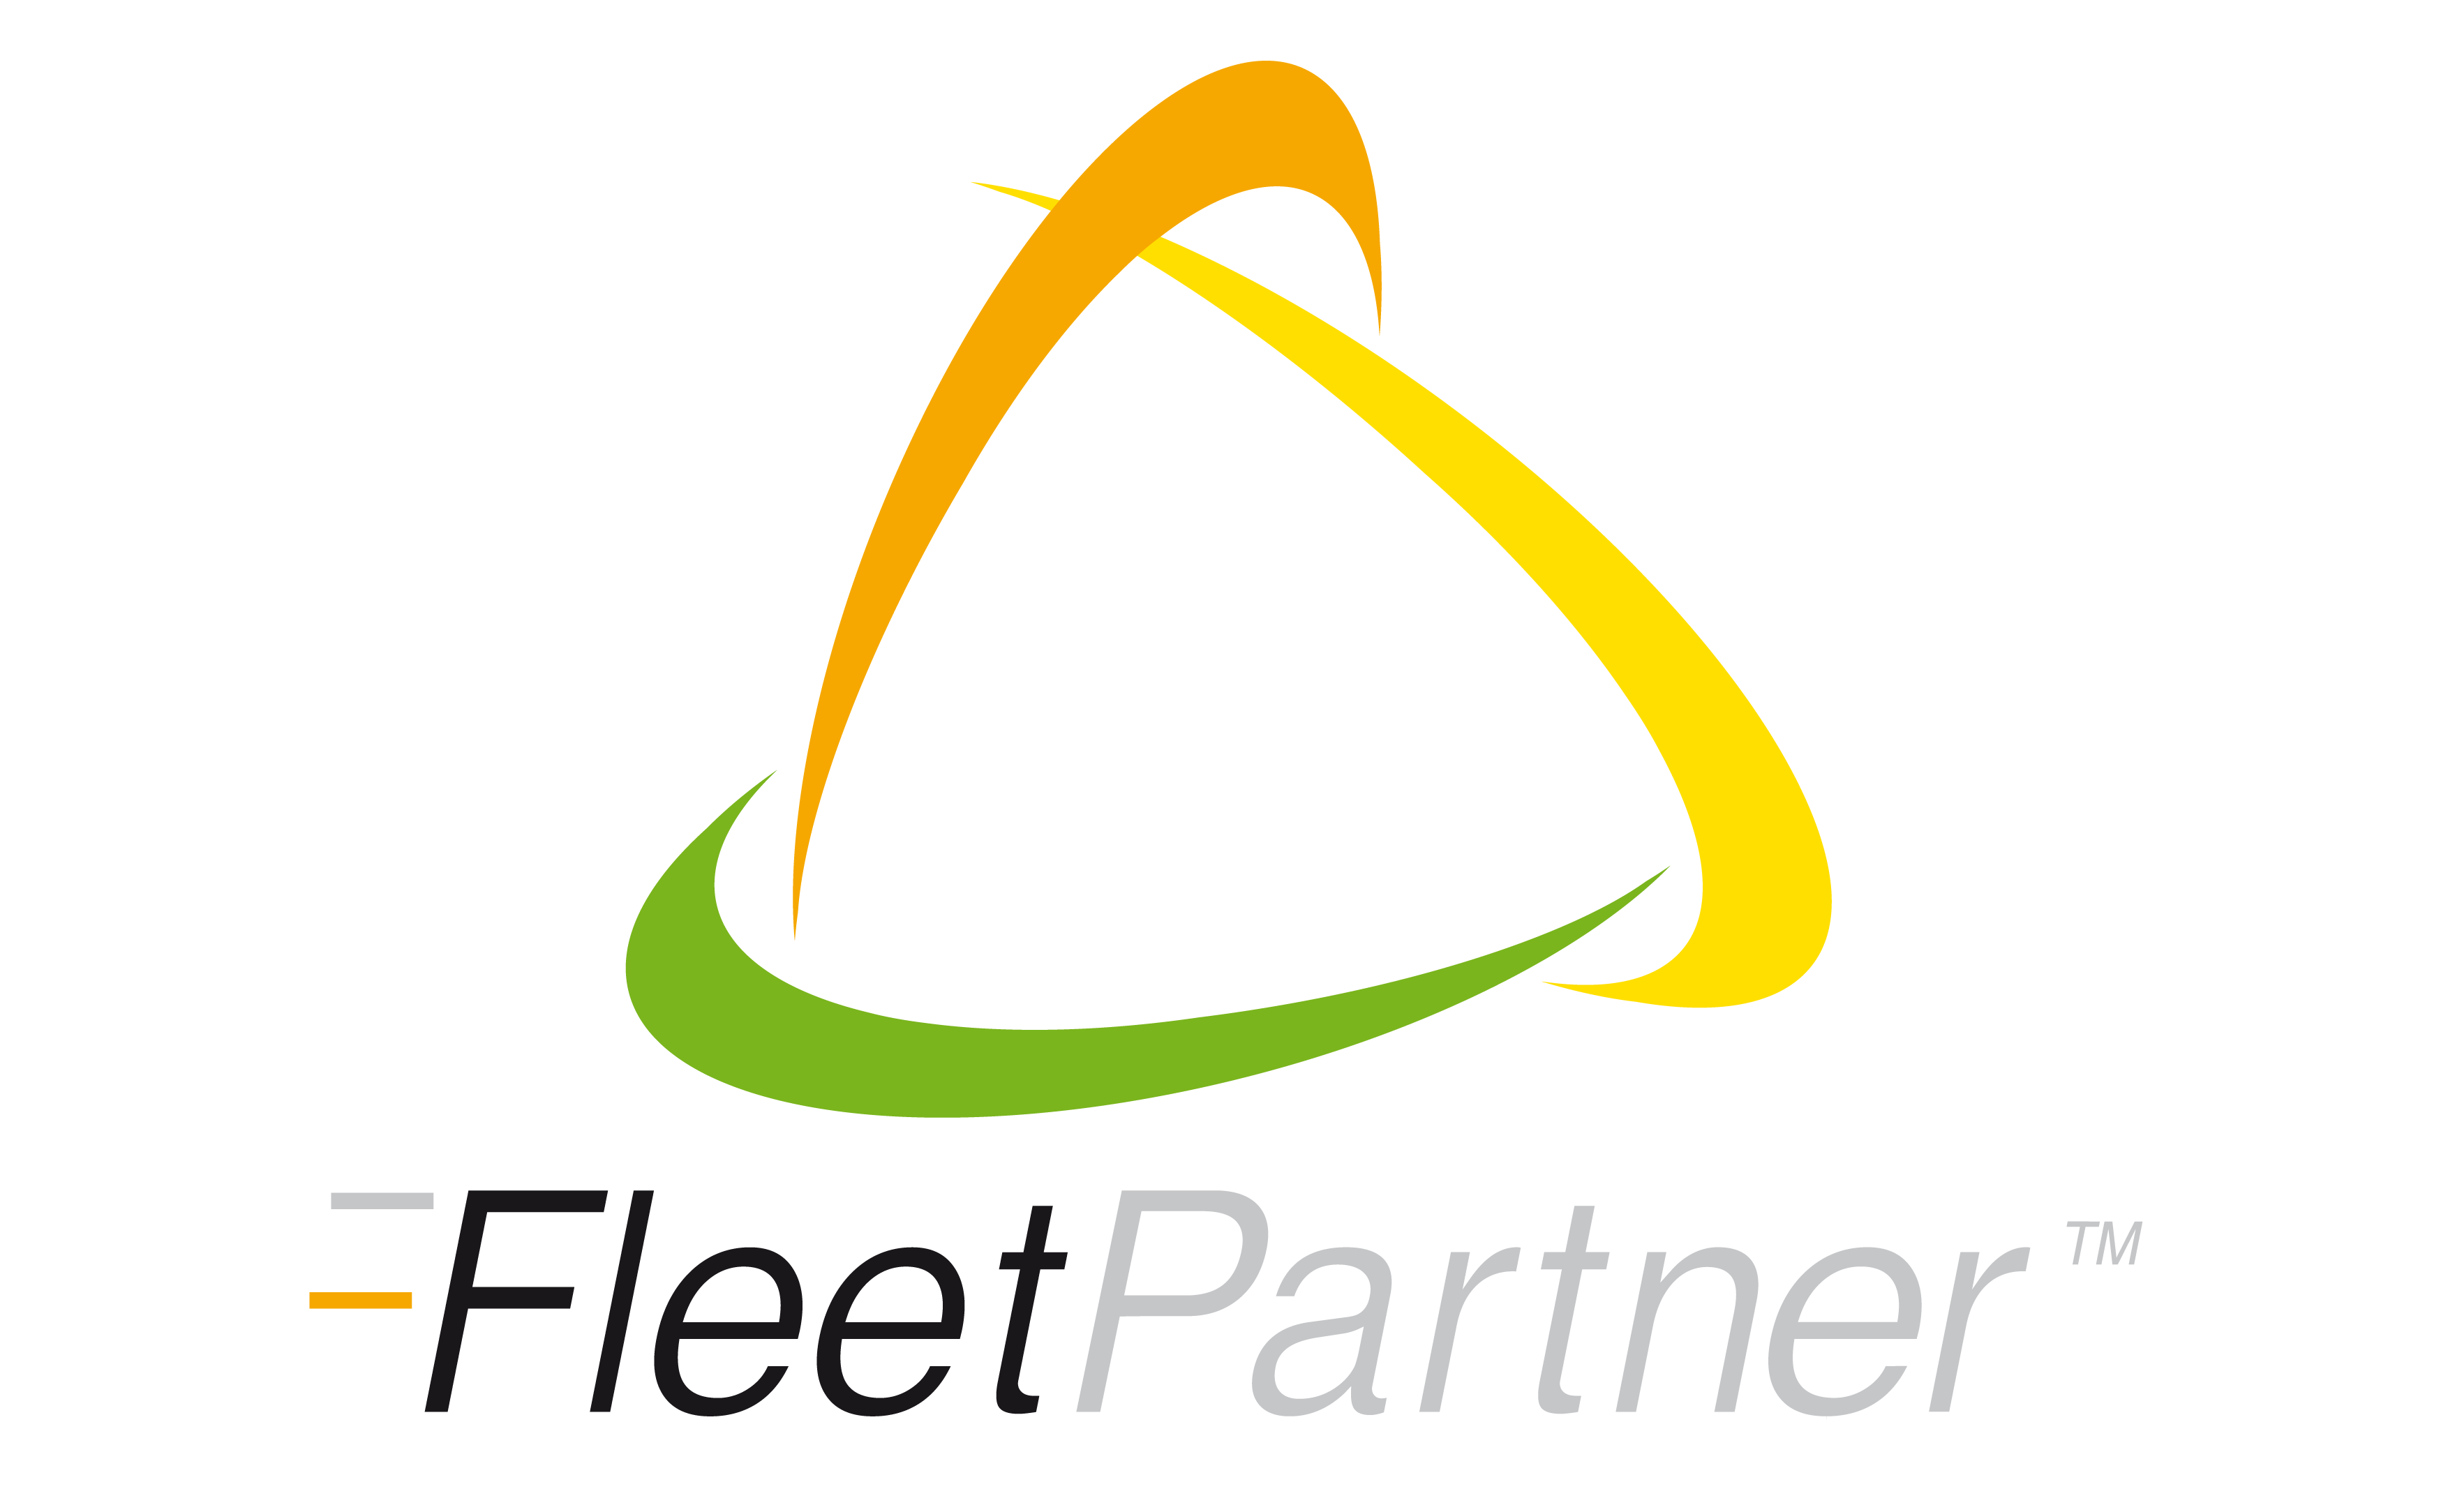 fleetpartner-triangle-logo-rvb-sans-contour-2.png